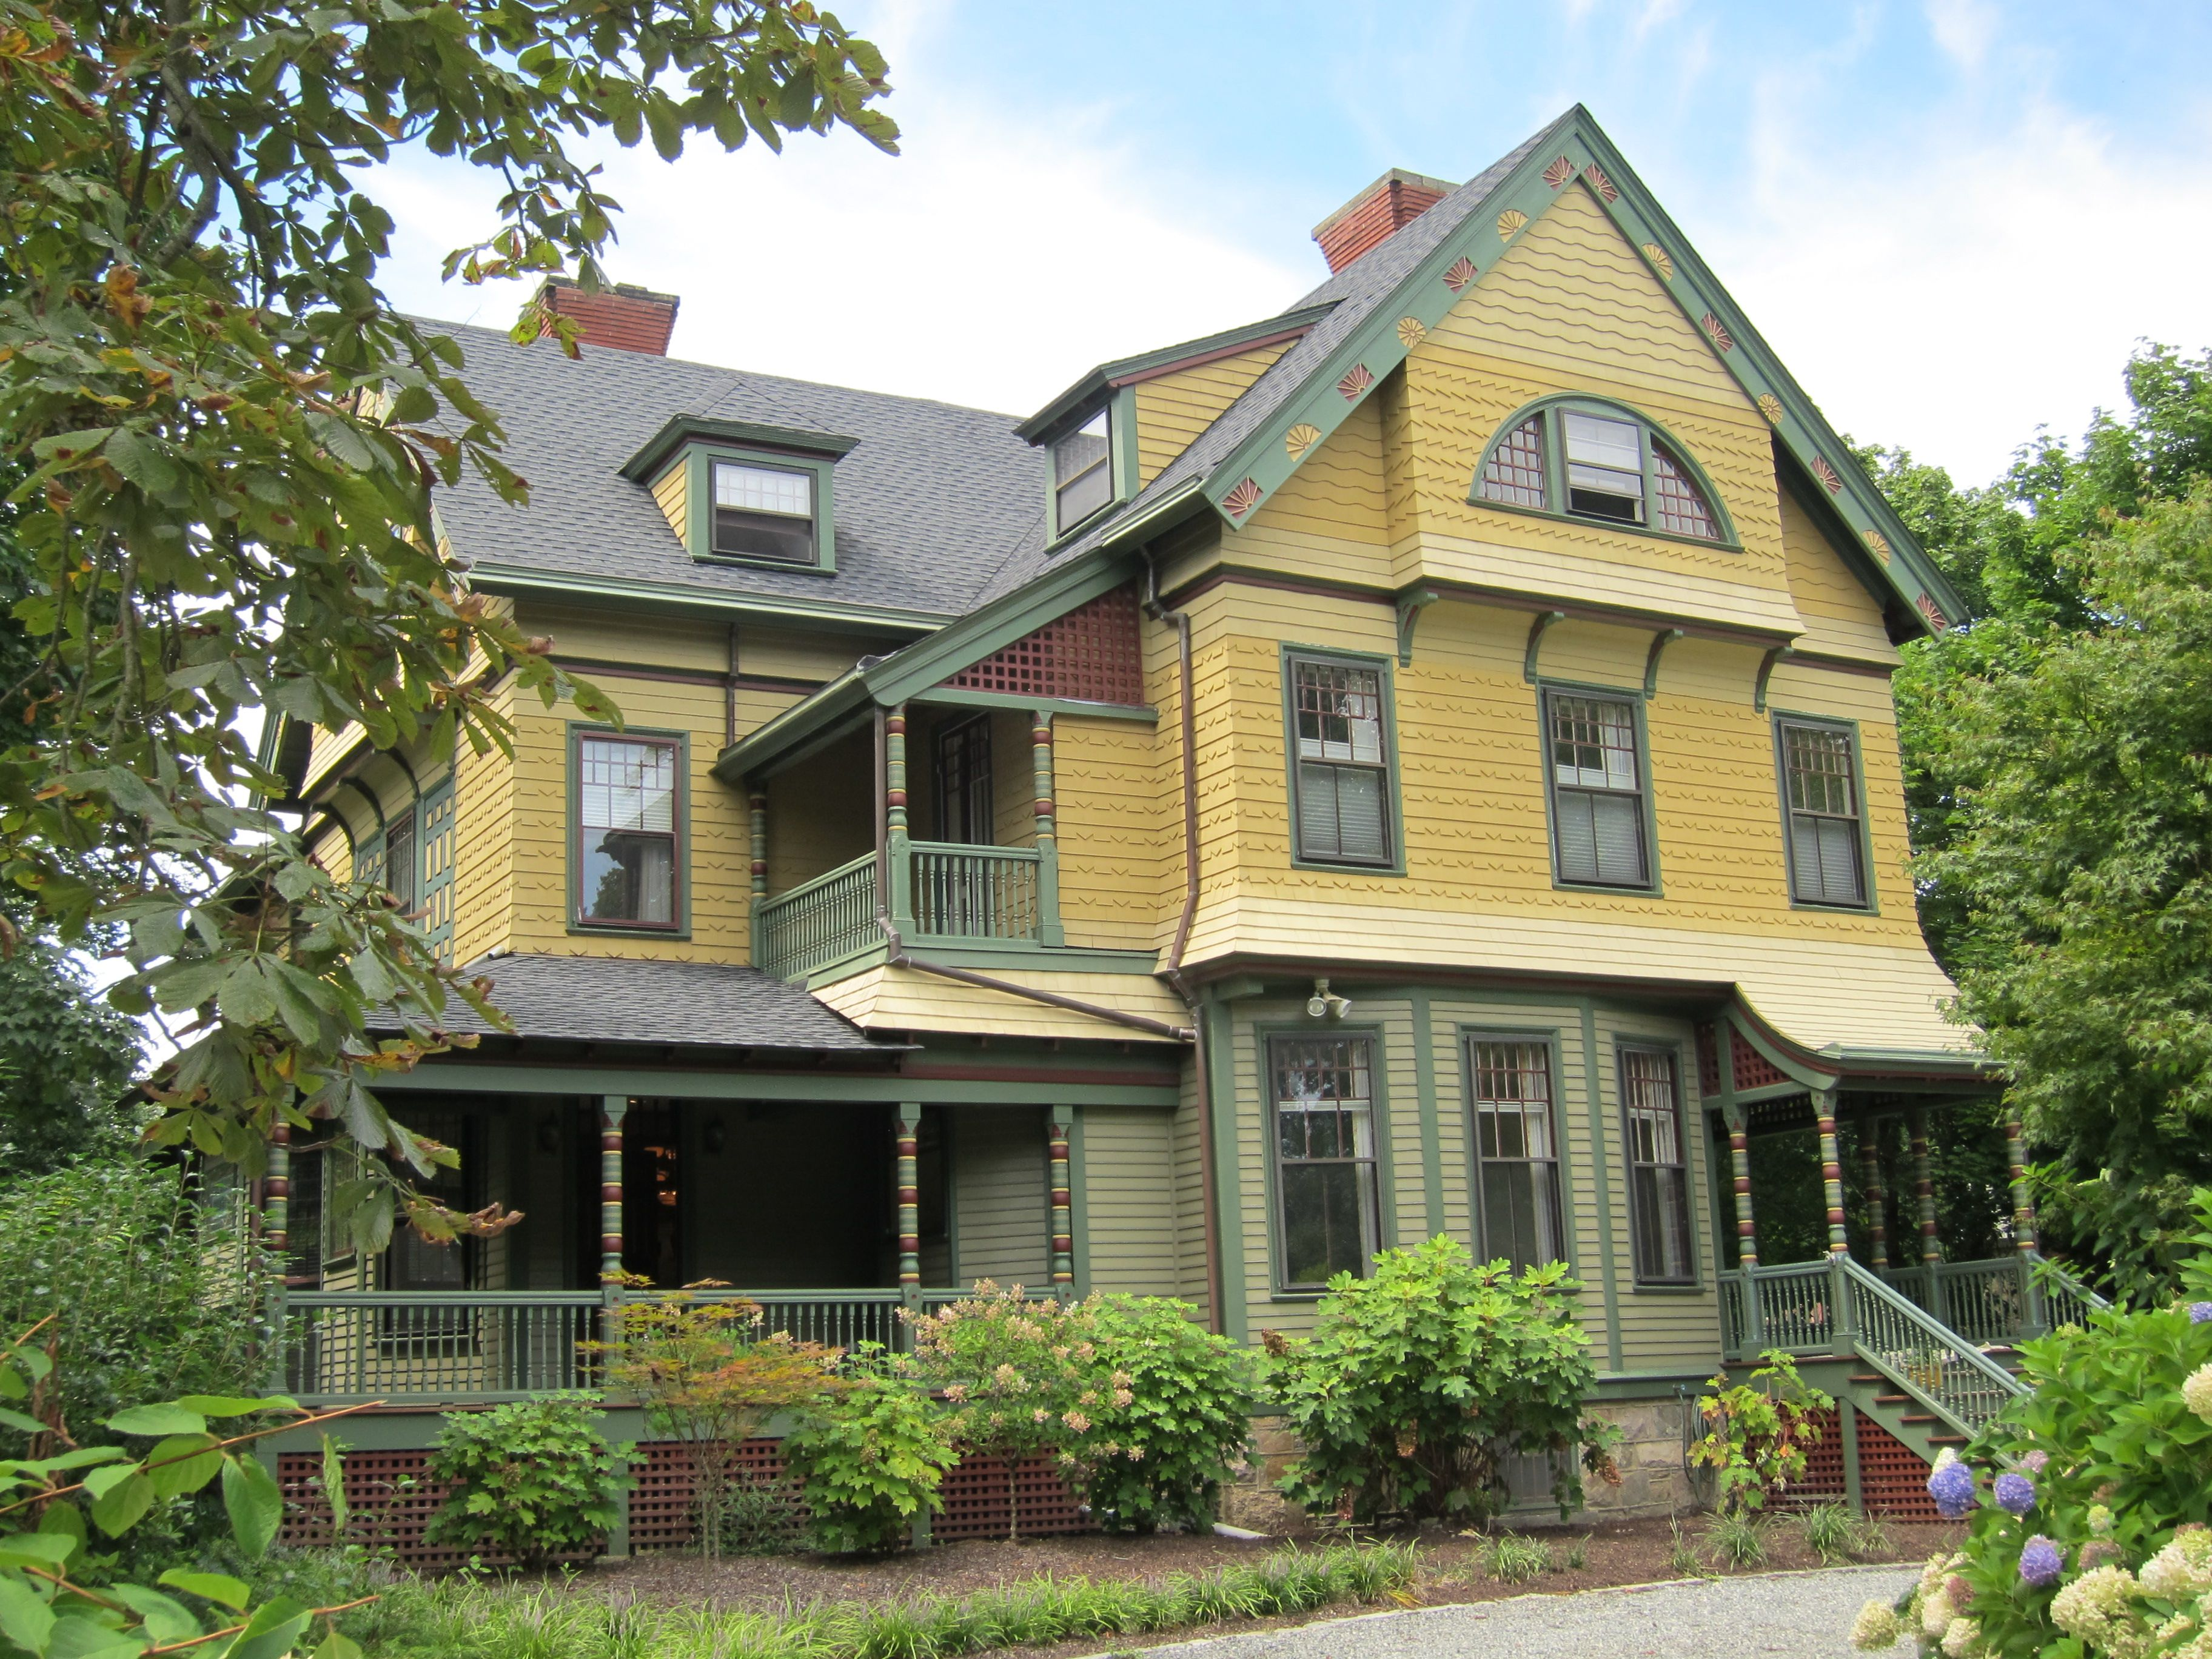 Swell 10 Best Images About Yellow Houses On Pinterest Paint Colors Largest Home Design Picture Inspirations Pitcheantrous